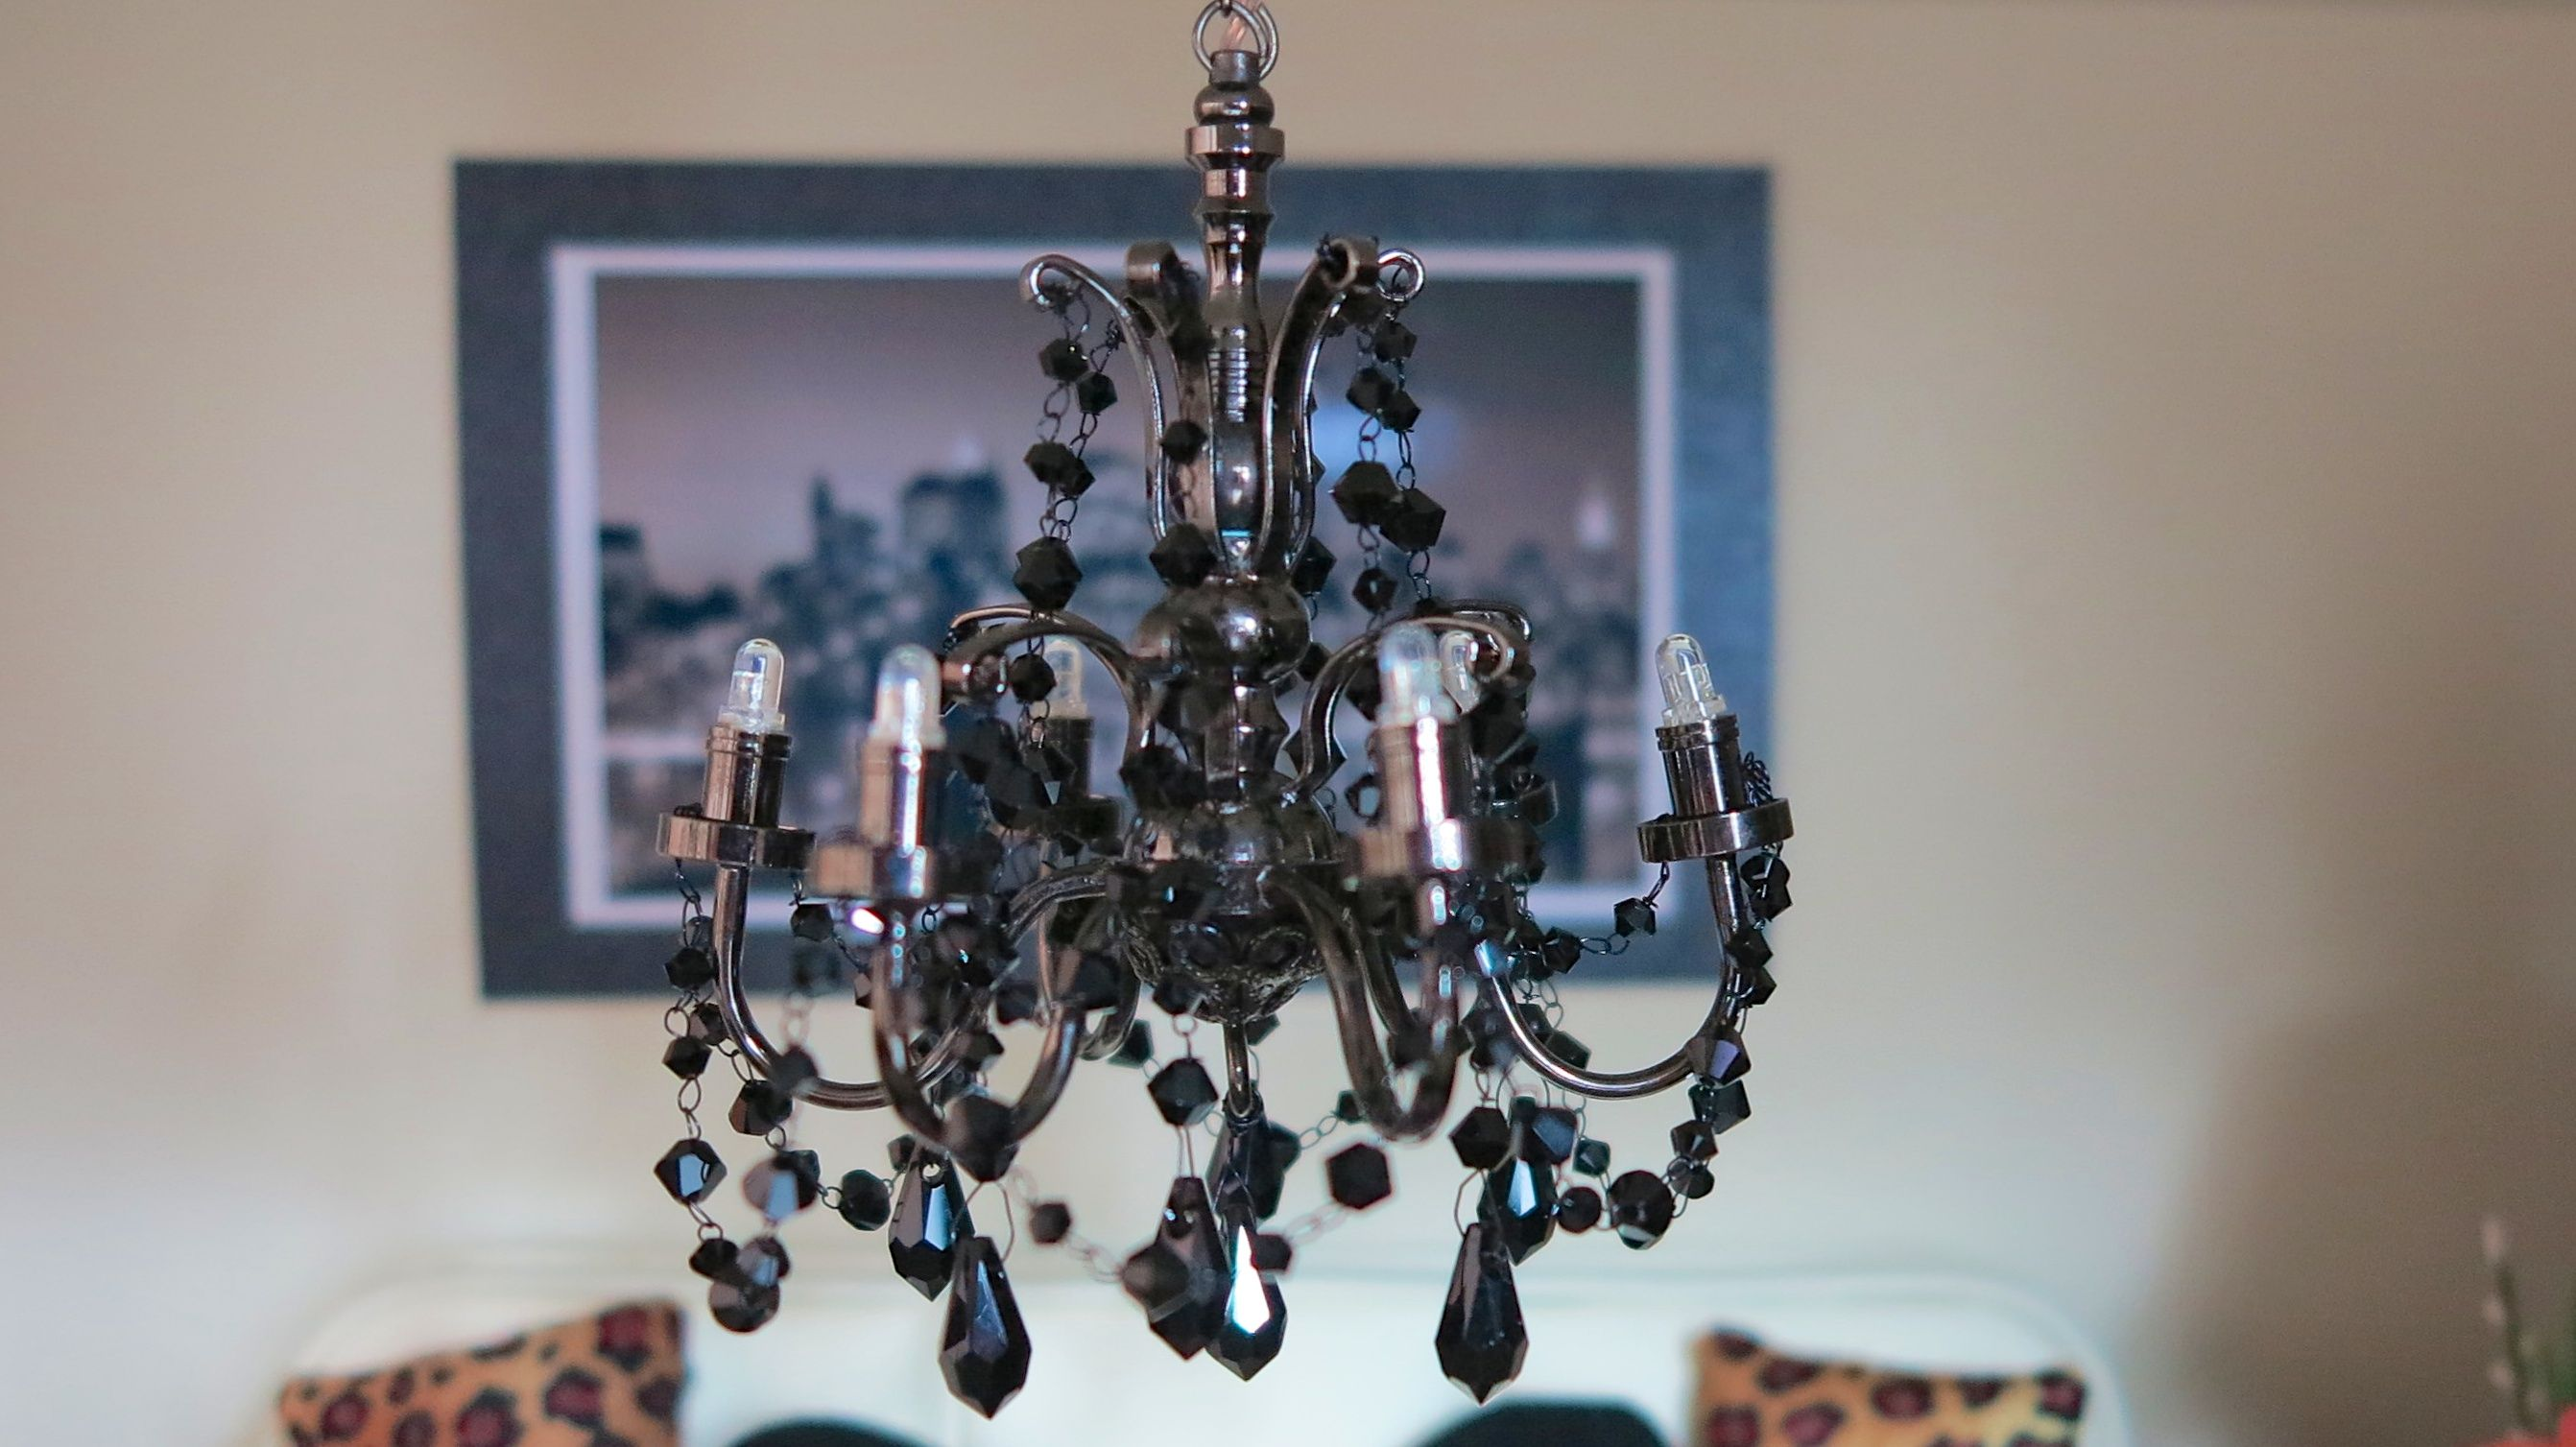 Dollhouse miniature chandelier made with black swarovski elements dollhouse miniature chandelier made with black swarovski elements bought at an online shop in nyc arubaitofo Image collections